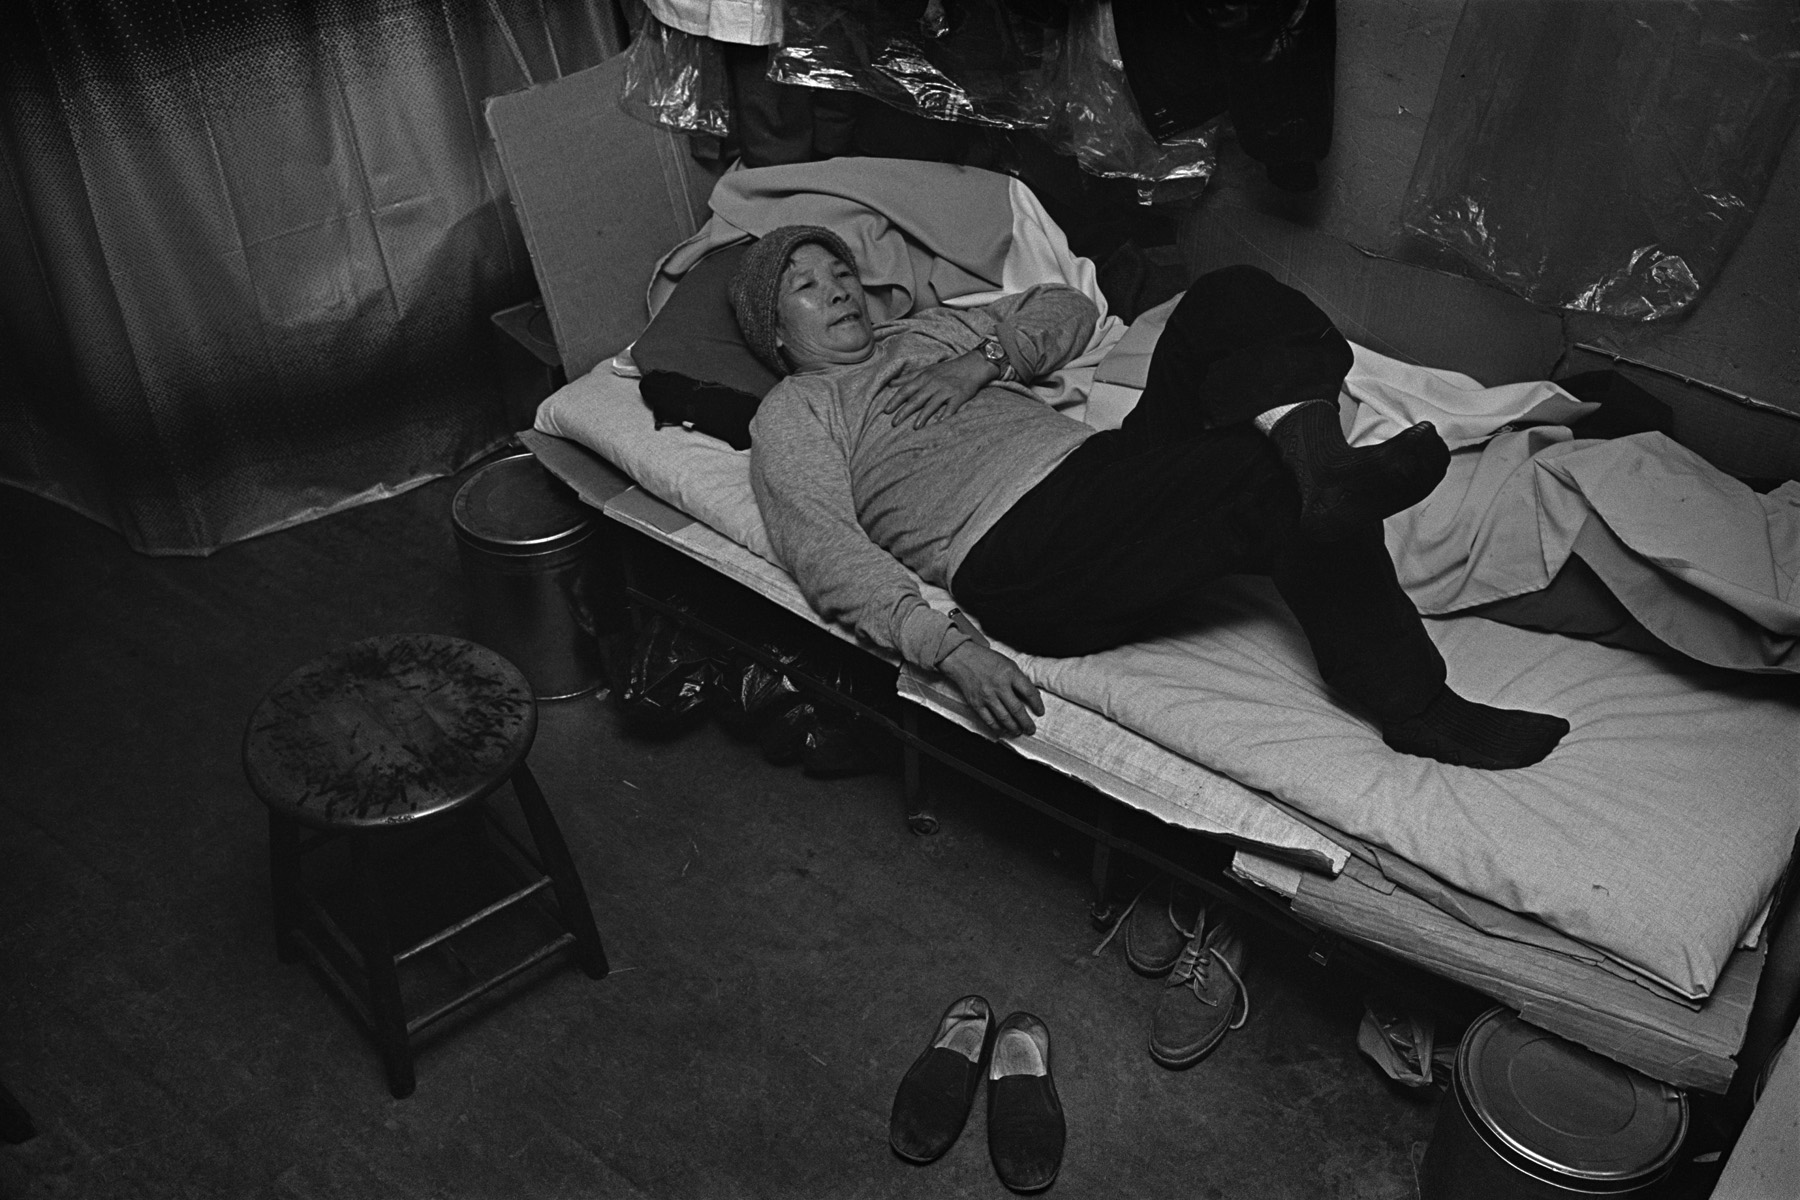 A man lies on his bed in theBachelor Apartment that he shares with 3 other men, Bayard St., New York Chinatown, 1982.